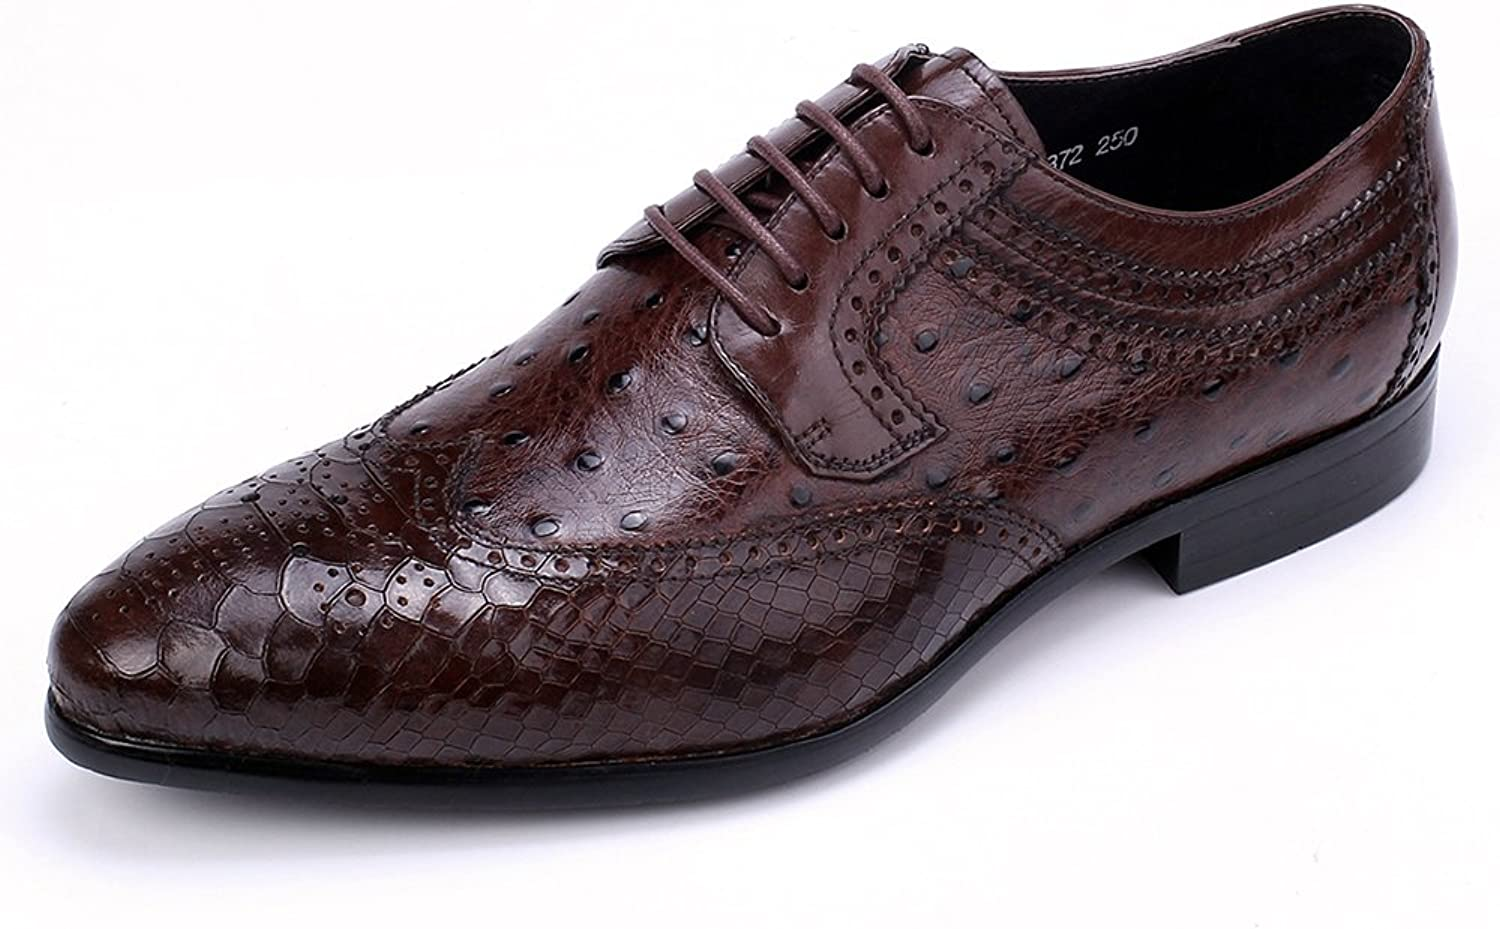 Dycarfell Ragyll Men's Snake Print Leather Oxford shoes